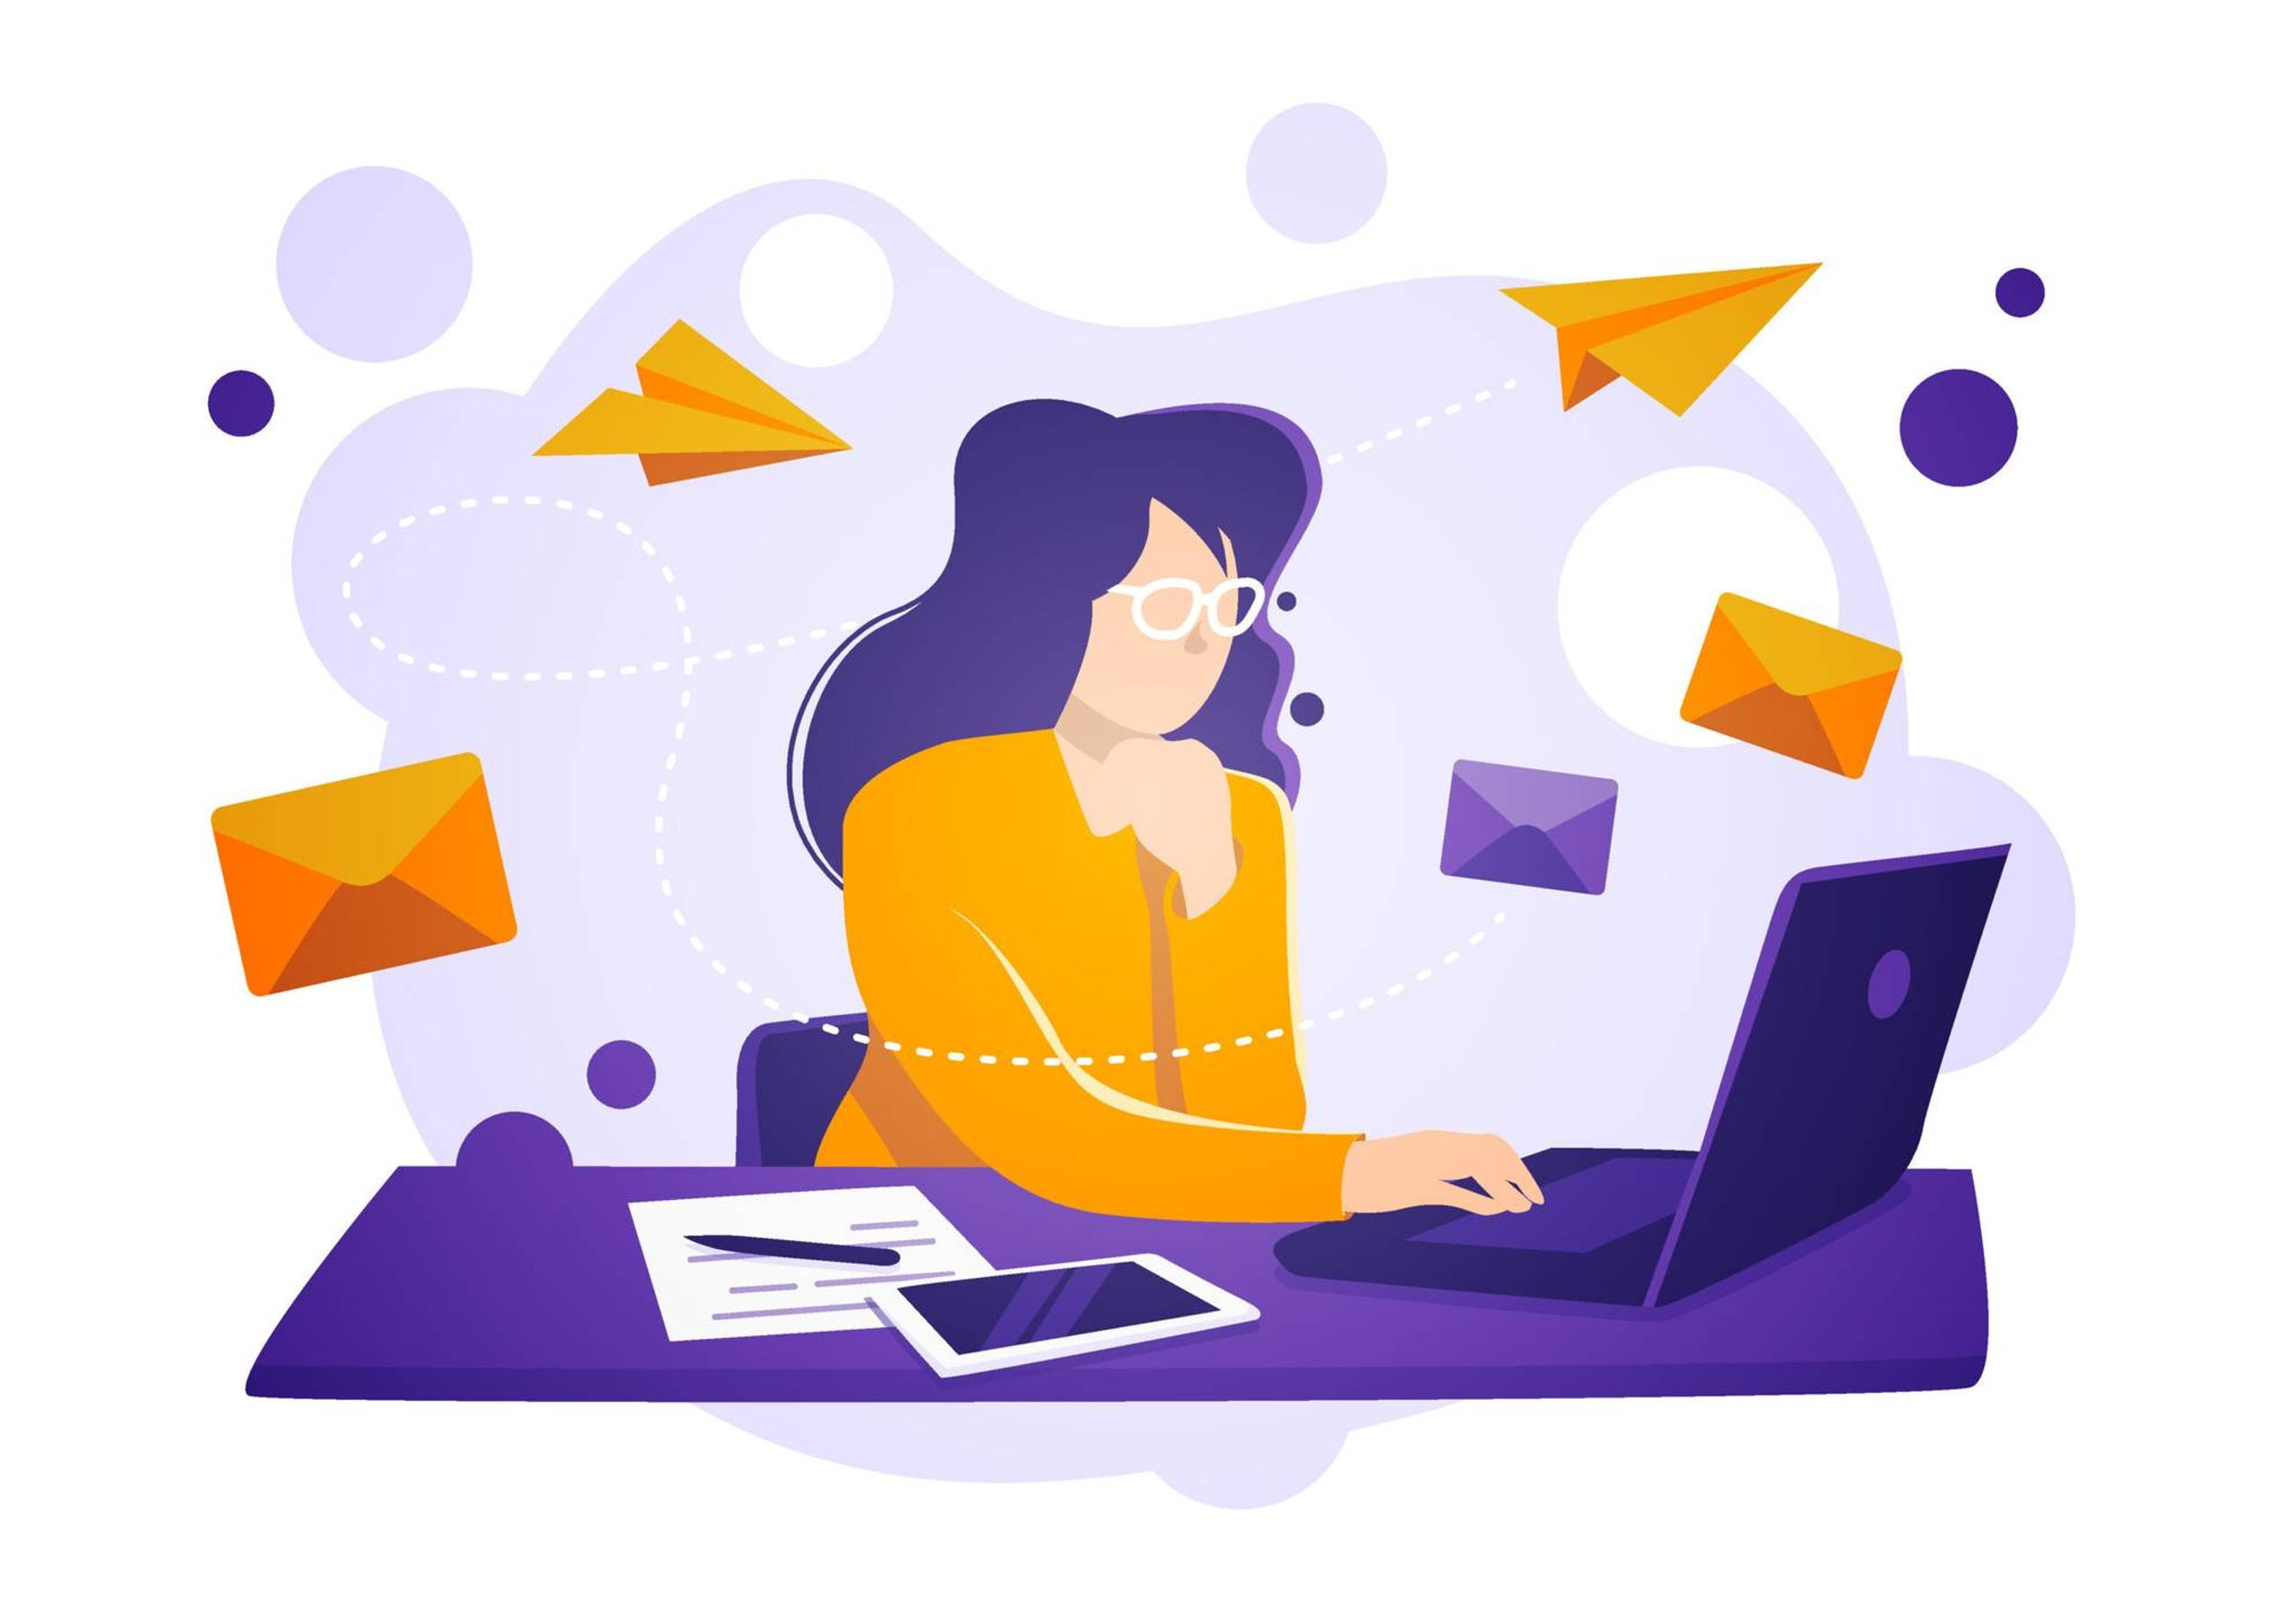 Illustration of woman using laptop to send email. Rewire PBS Work Introverts